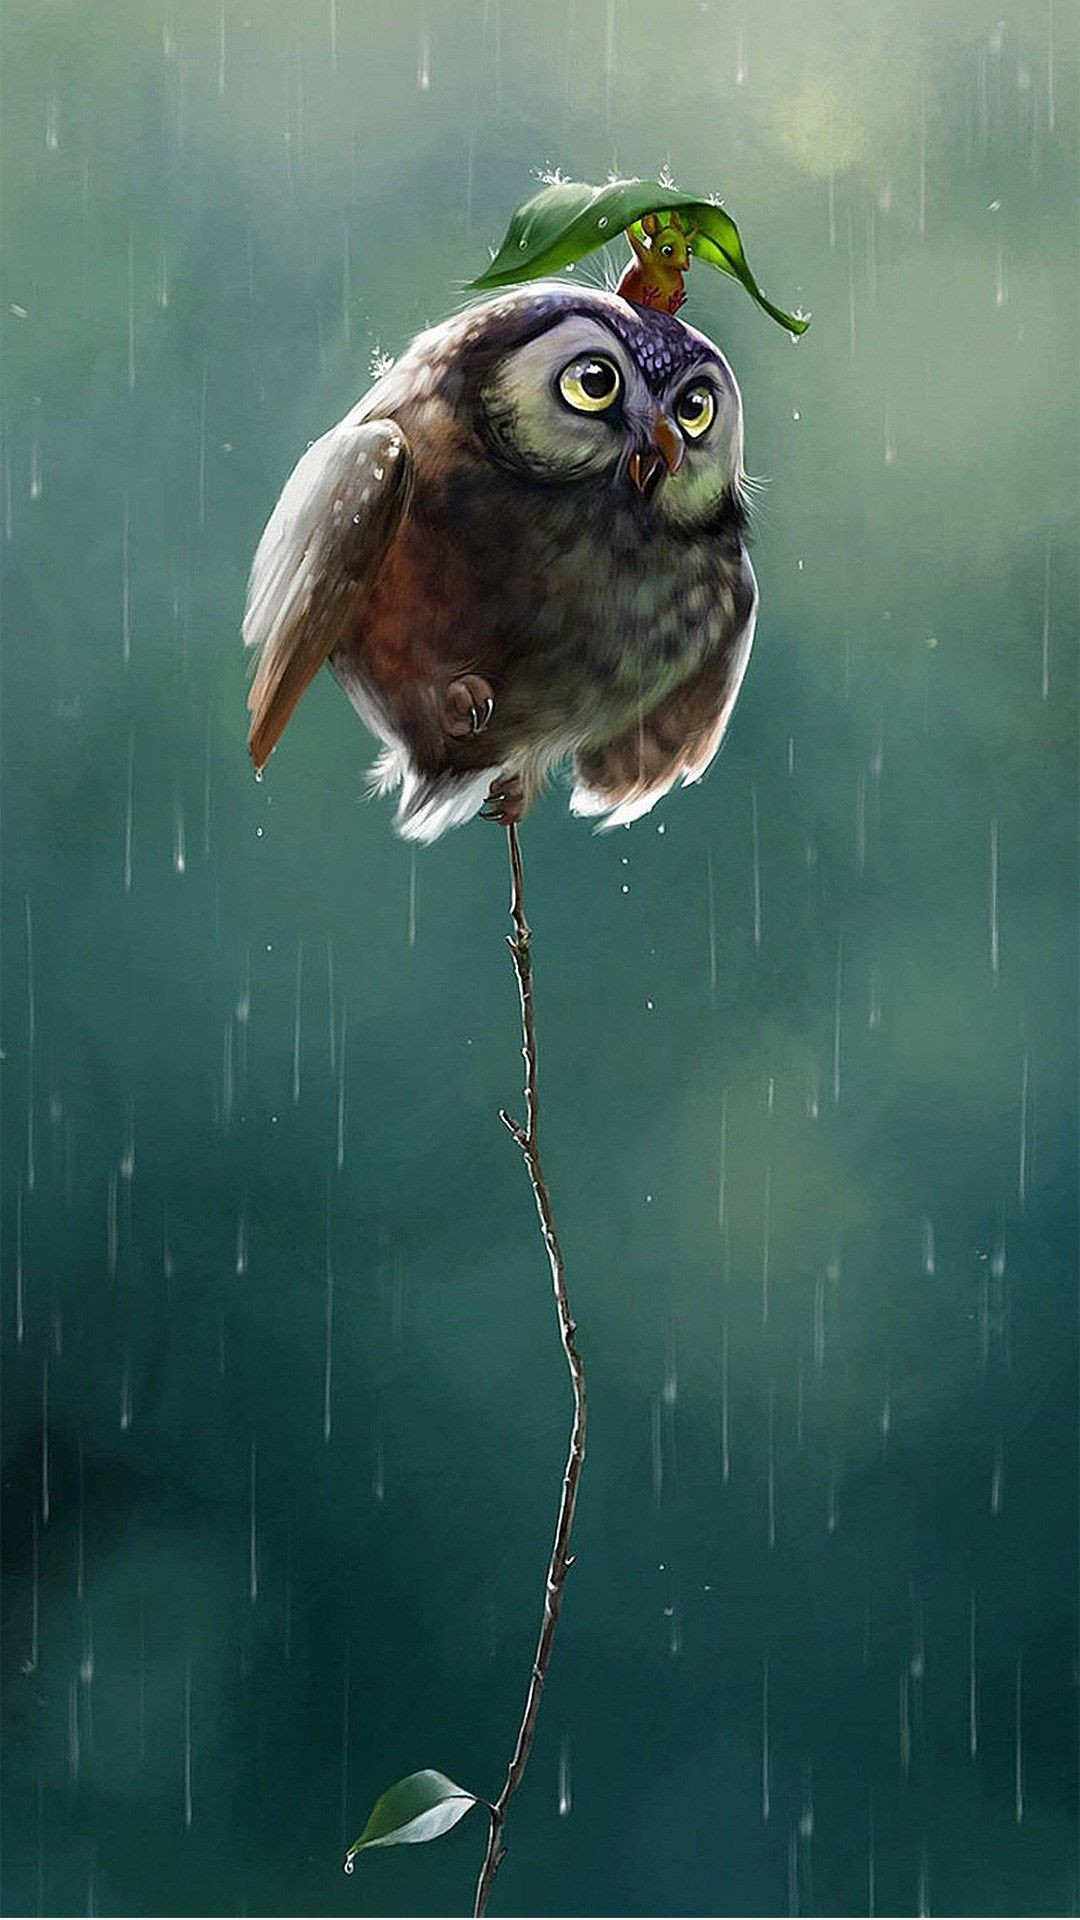 Res: 1080x1920, Cute Owl Flying High Rainy Day Covering Leaf #iPhone #6 #wallpaper